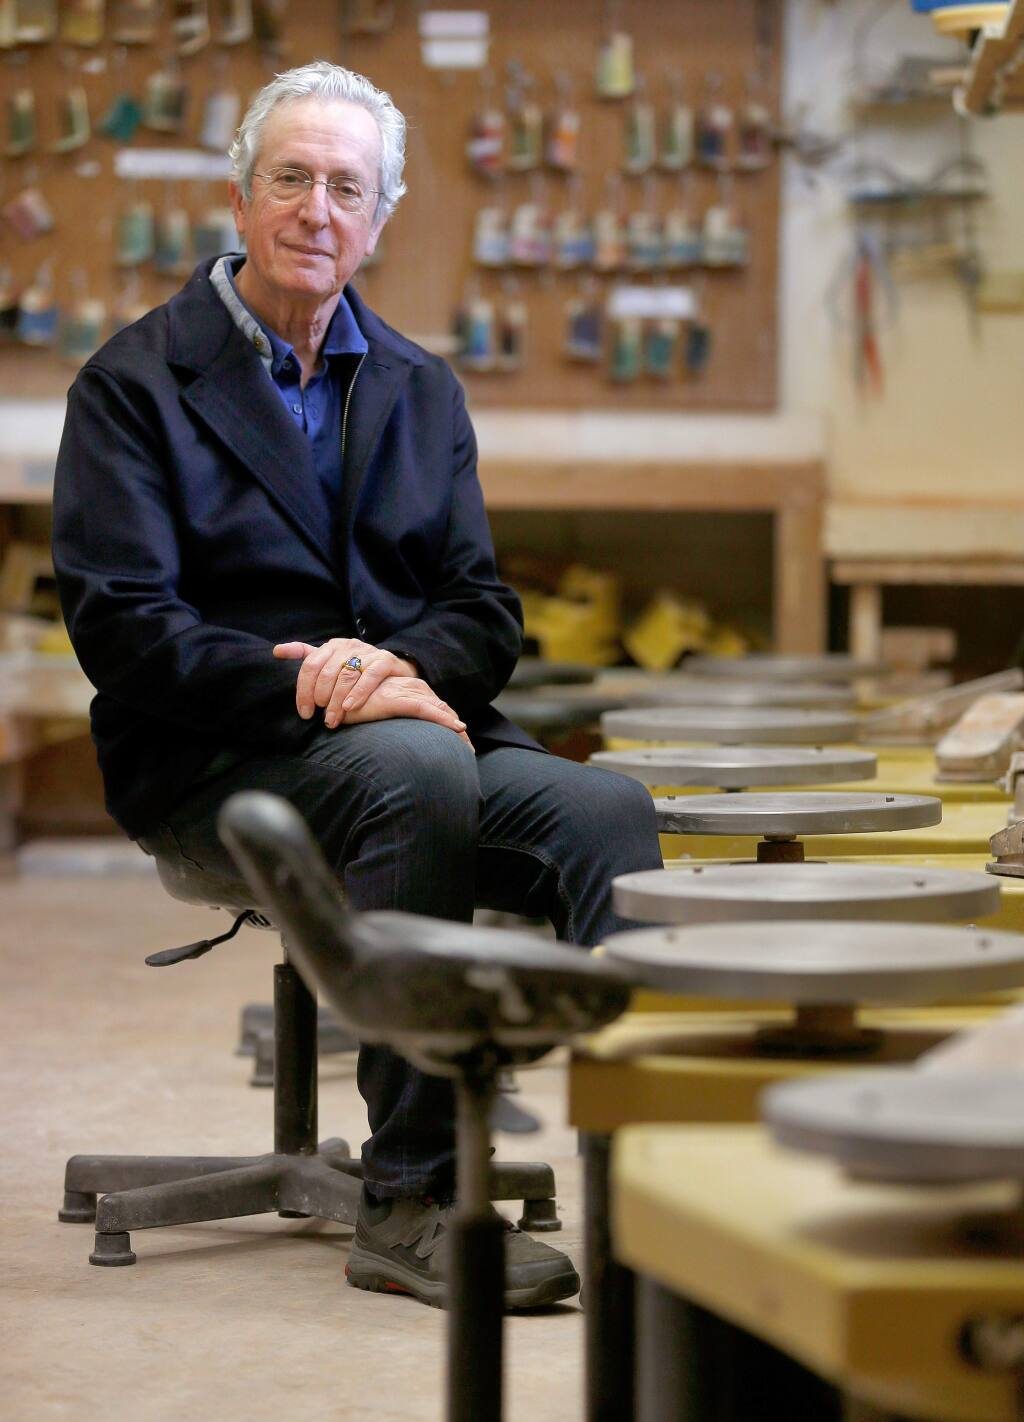 Robert Brent, board member of Sebastopol Center for the Arts and inventor of the Brent Pottery Wheel, poses for a portrait beside a row of his invention at Sebastopol Center for the Arts, in Sebastopol, California on Friday, January 5, 2018. (Alvin Jornada / The Press Democrat)